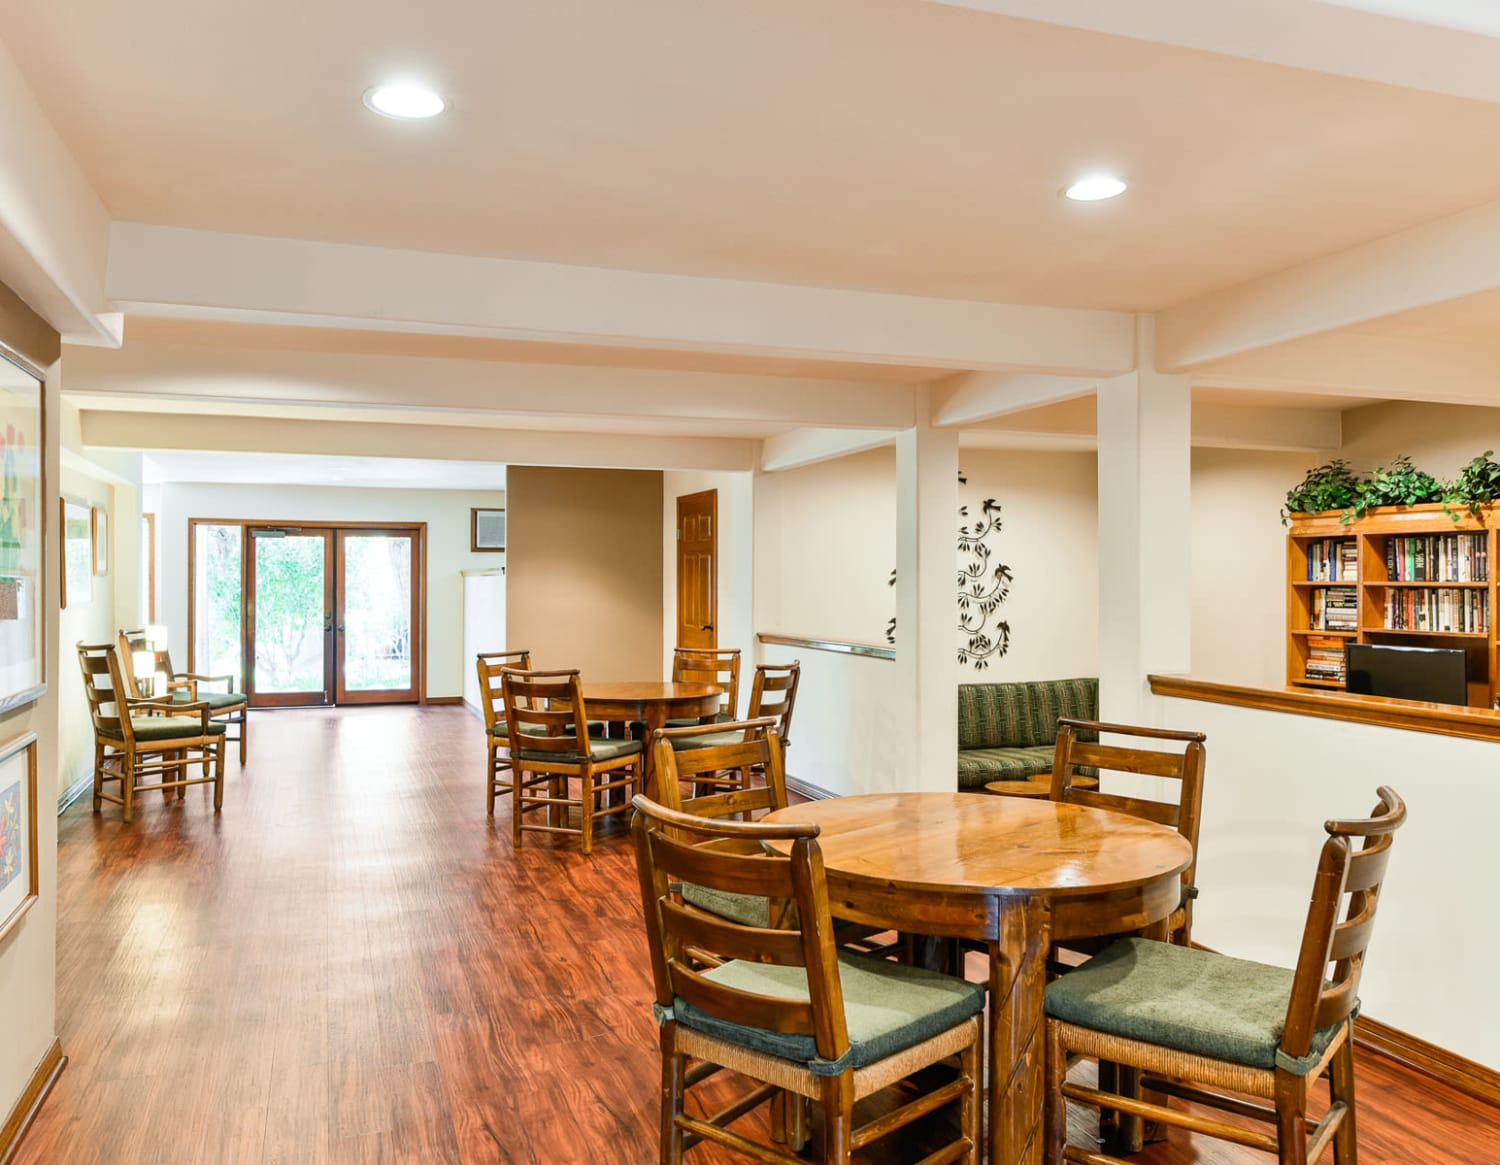 Spacious and welcoming resident clubhouse at Village Pointe in Northridge, California